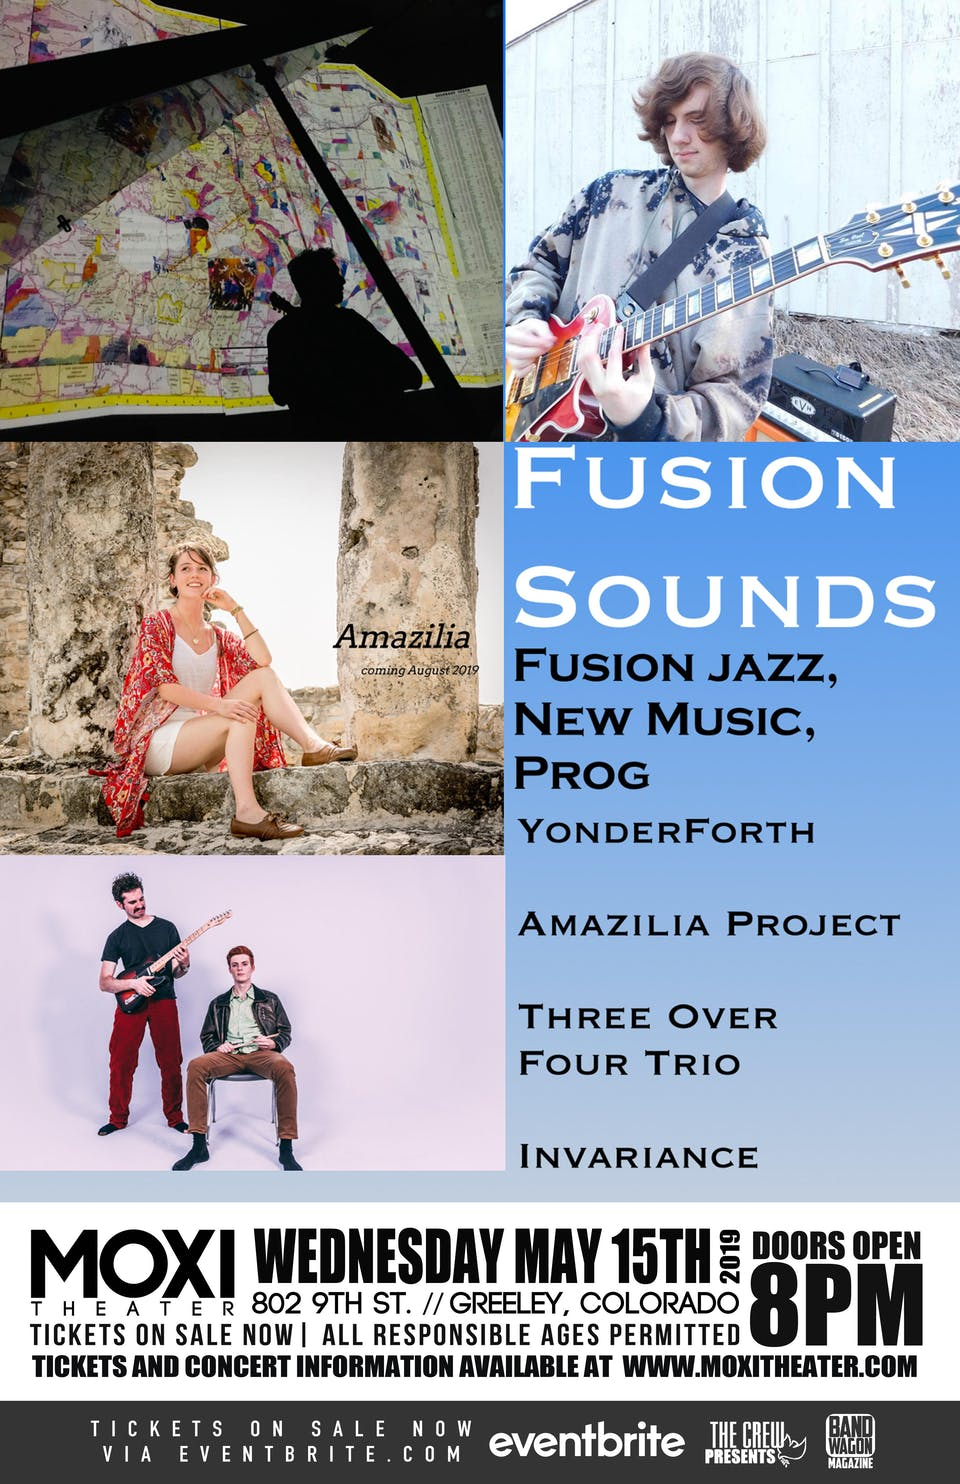 Fusion Sounds - Fusion Jazz, New Music, Prog